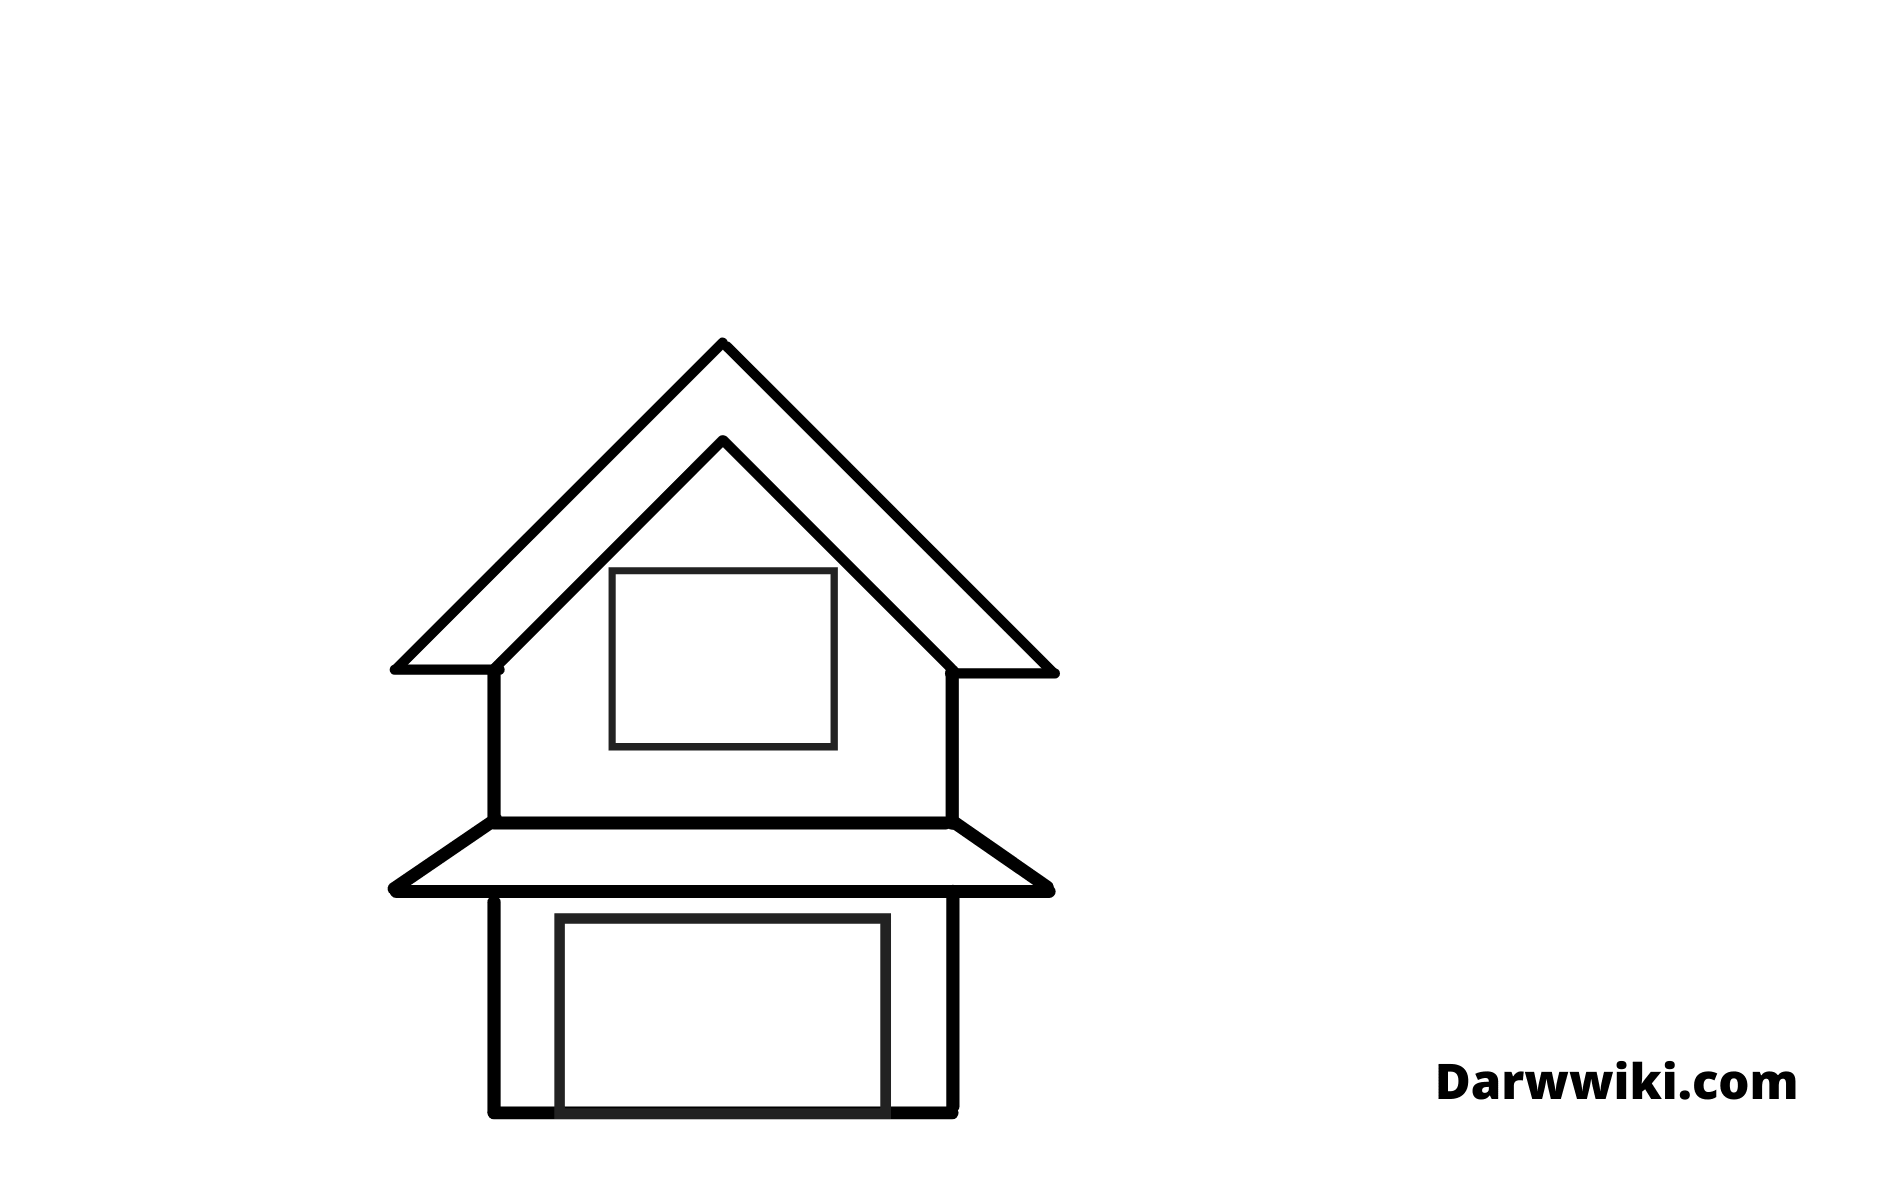 House drawing Step 3 - Draw First Part windows and Garage